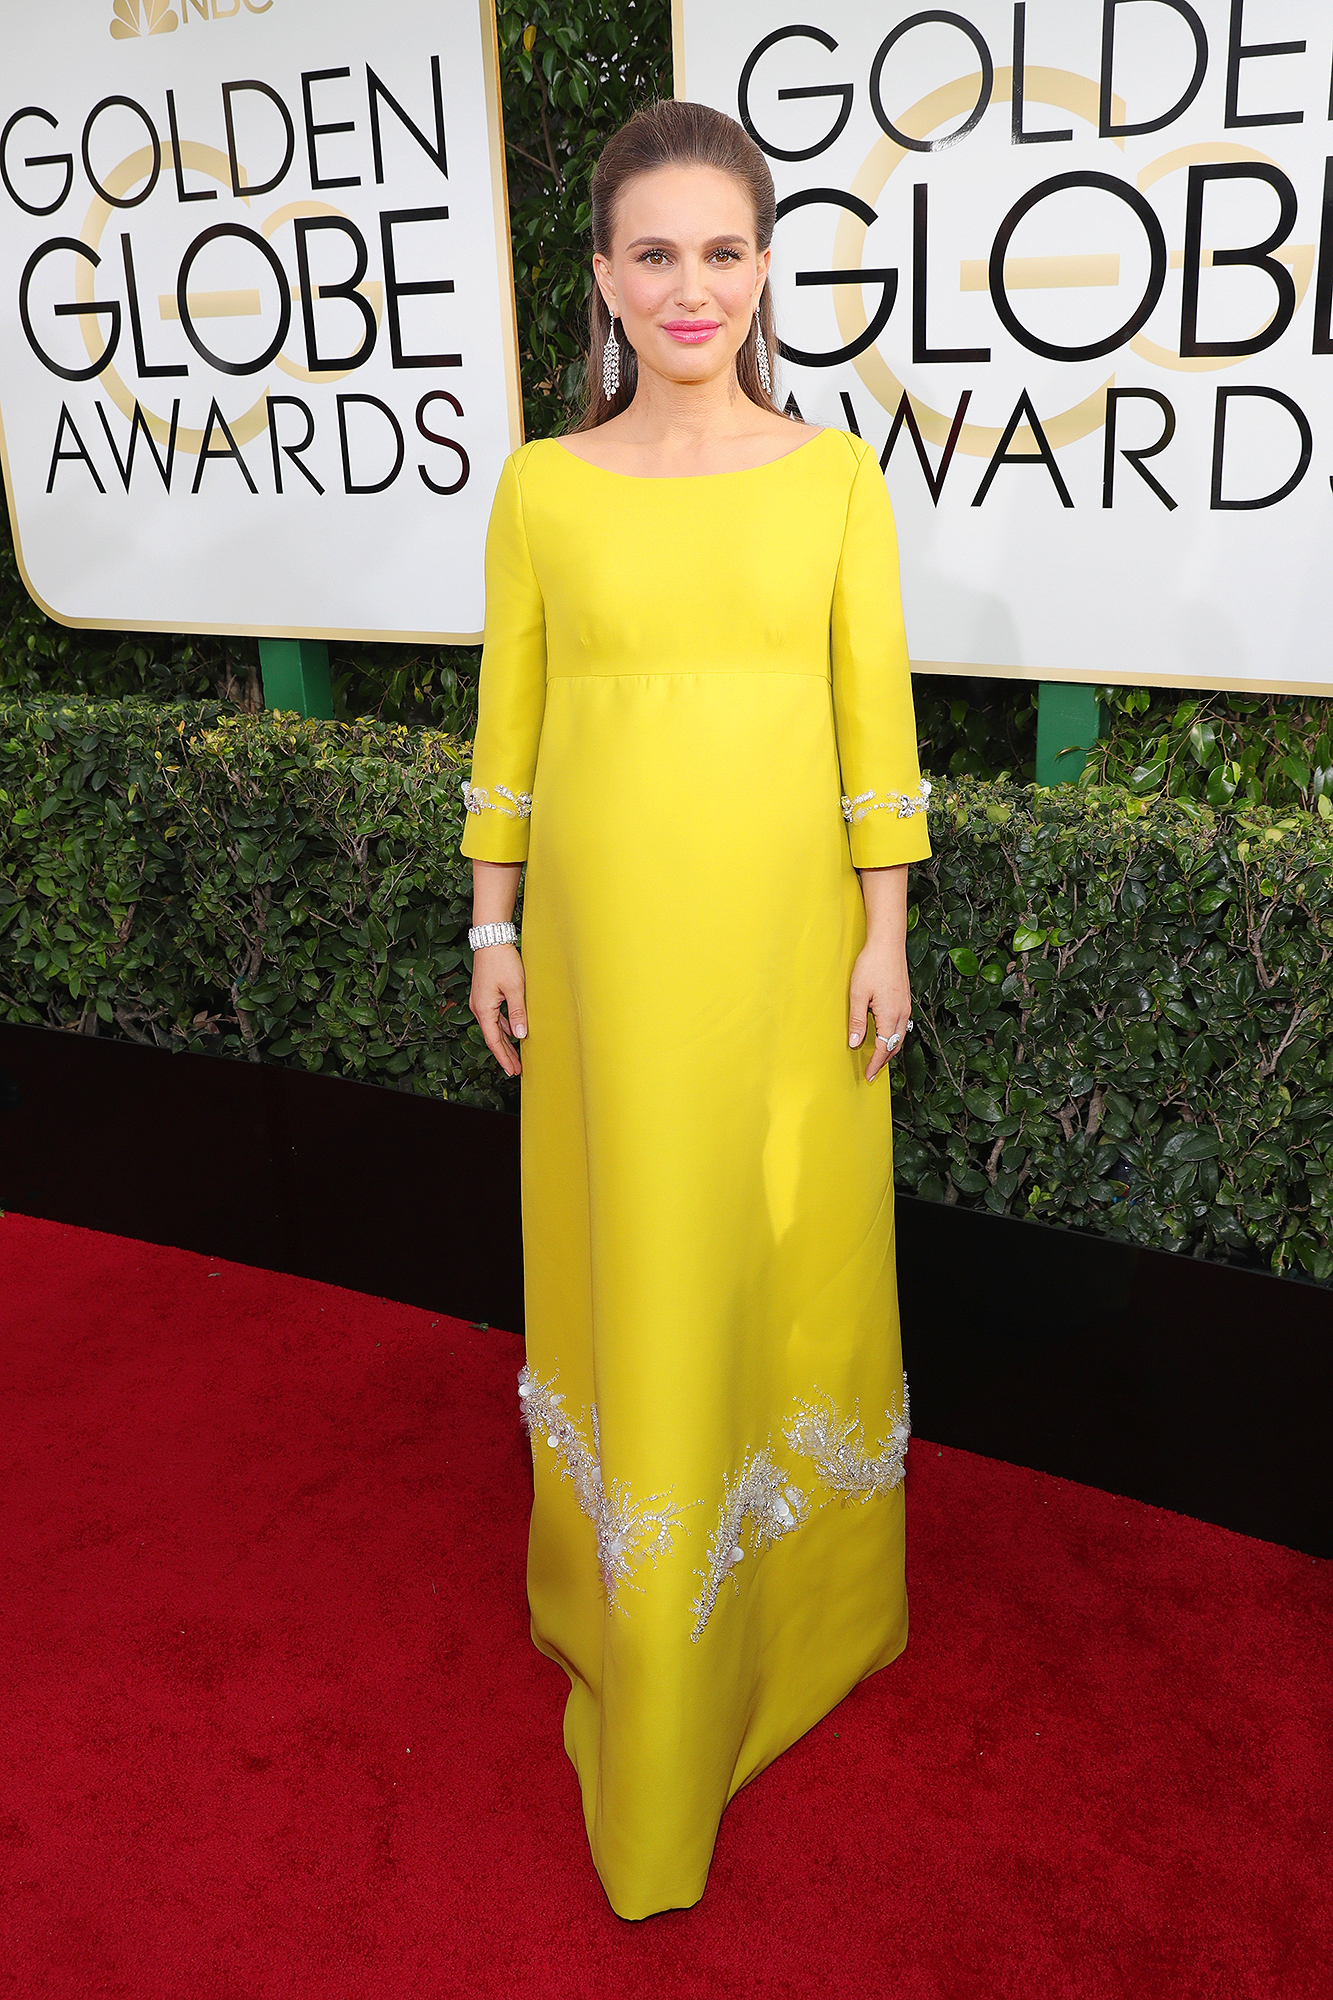 e93a3b1e2860 Natalie Portman arrives at the 74th Annual Golden Globe Awards held at the  Beverly Hilton on Jan. 8